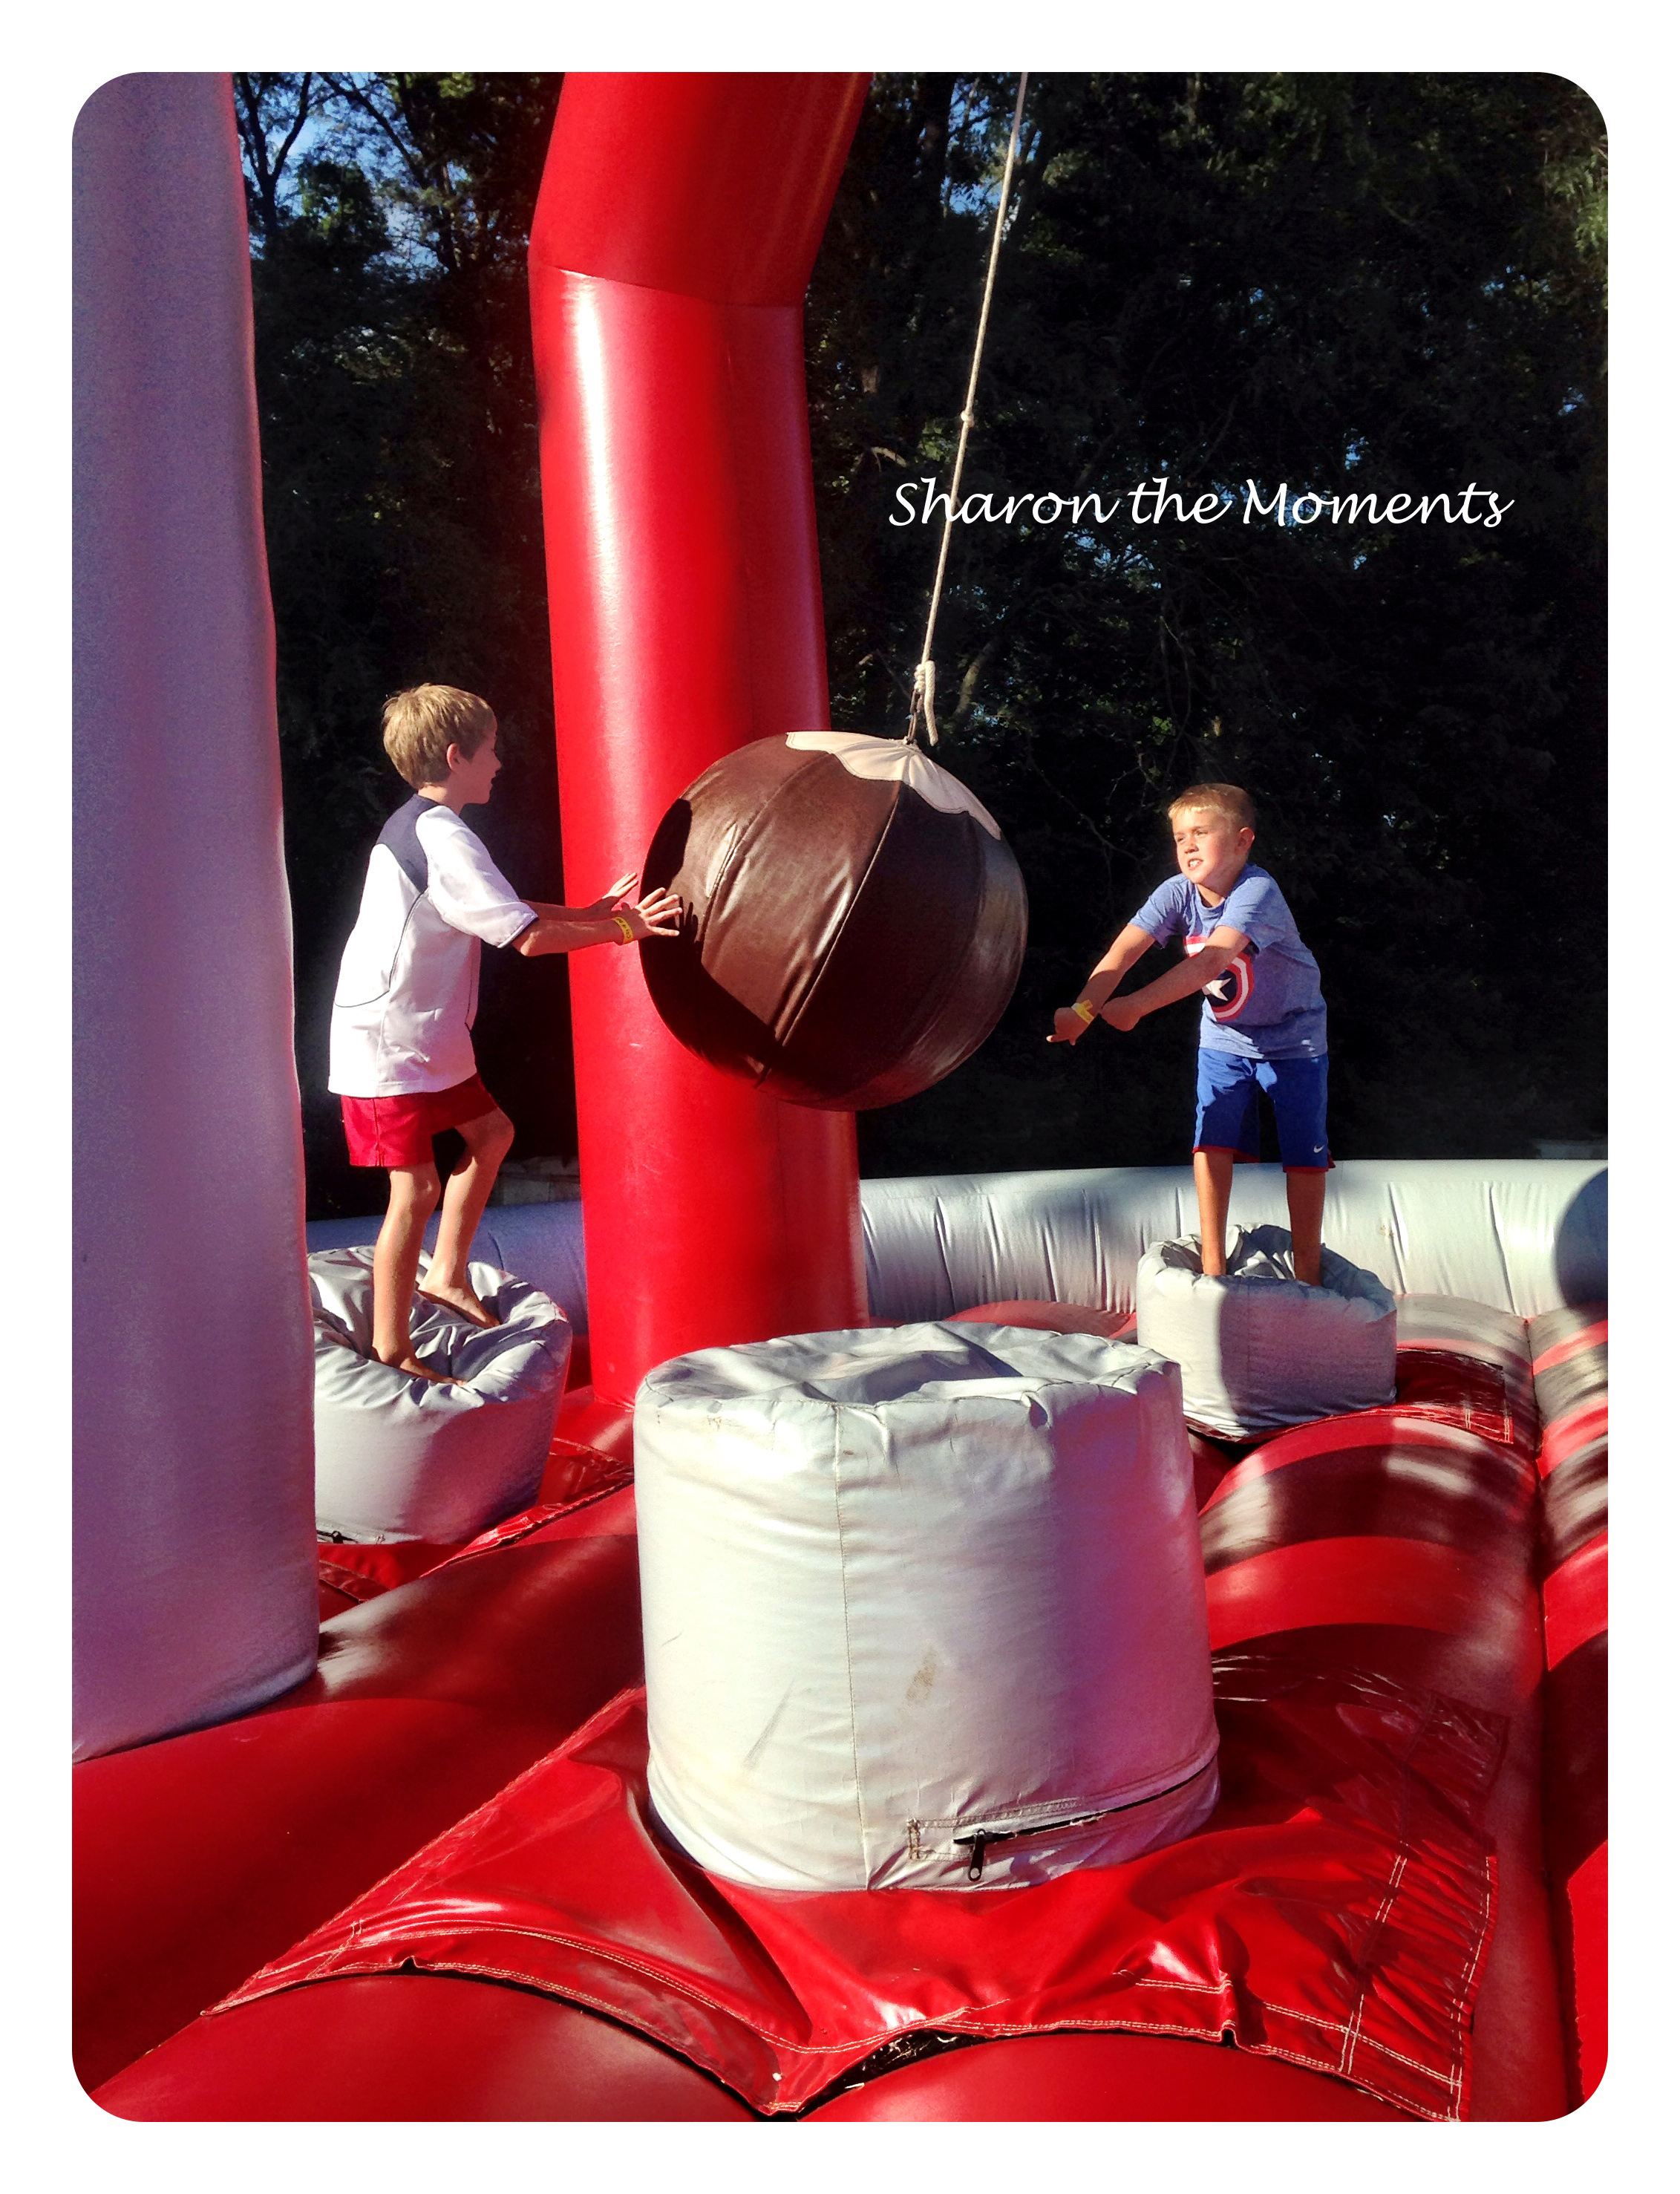 Dublin OH 4th of July Celebreation|Sharon the Moments Blog